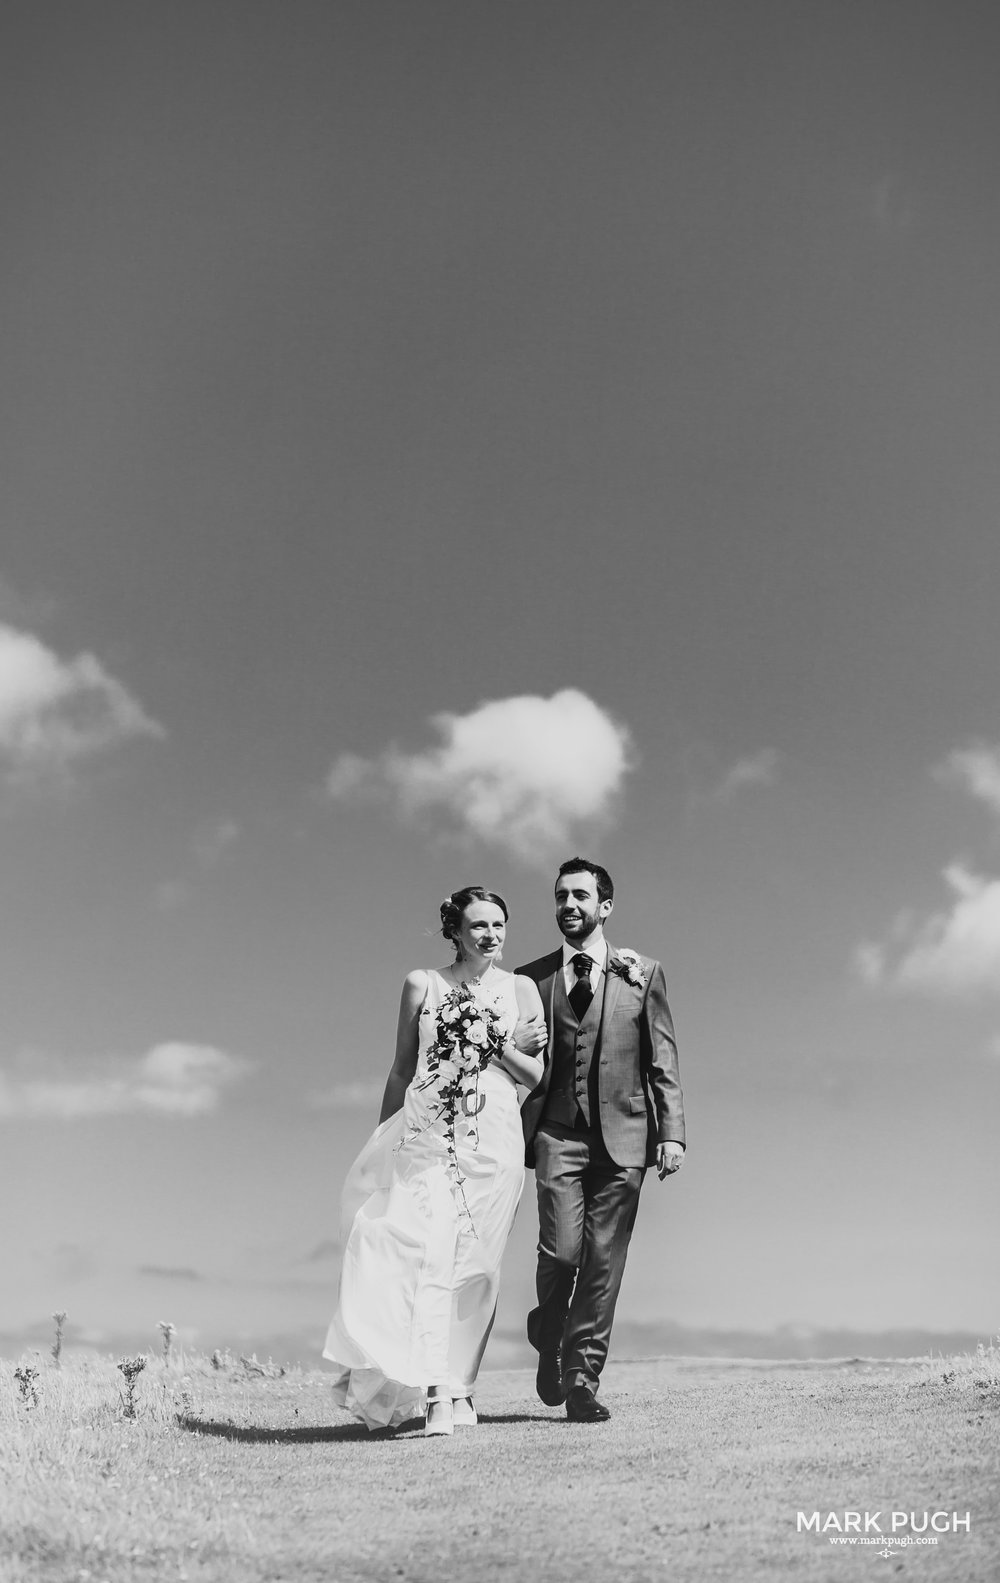 100 - Alexandra and Nathan - fineART wedding photography by www.markpugh.com Mark Pugh of www.mpmedia.co.uk_.JPG